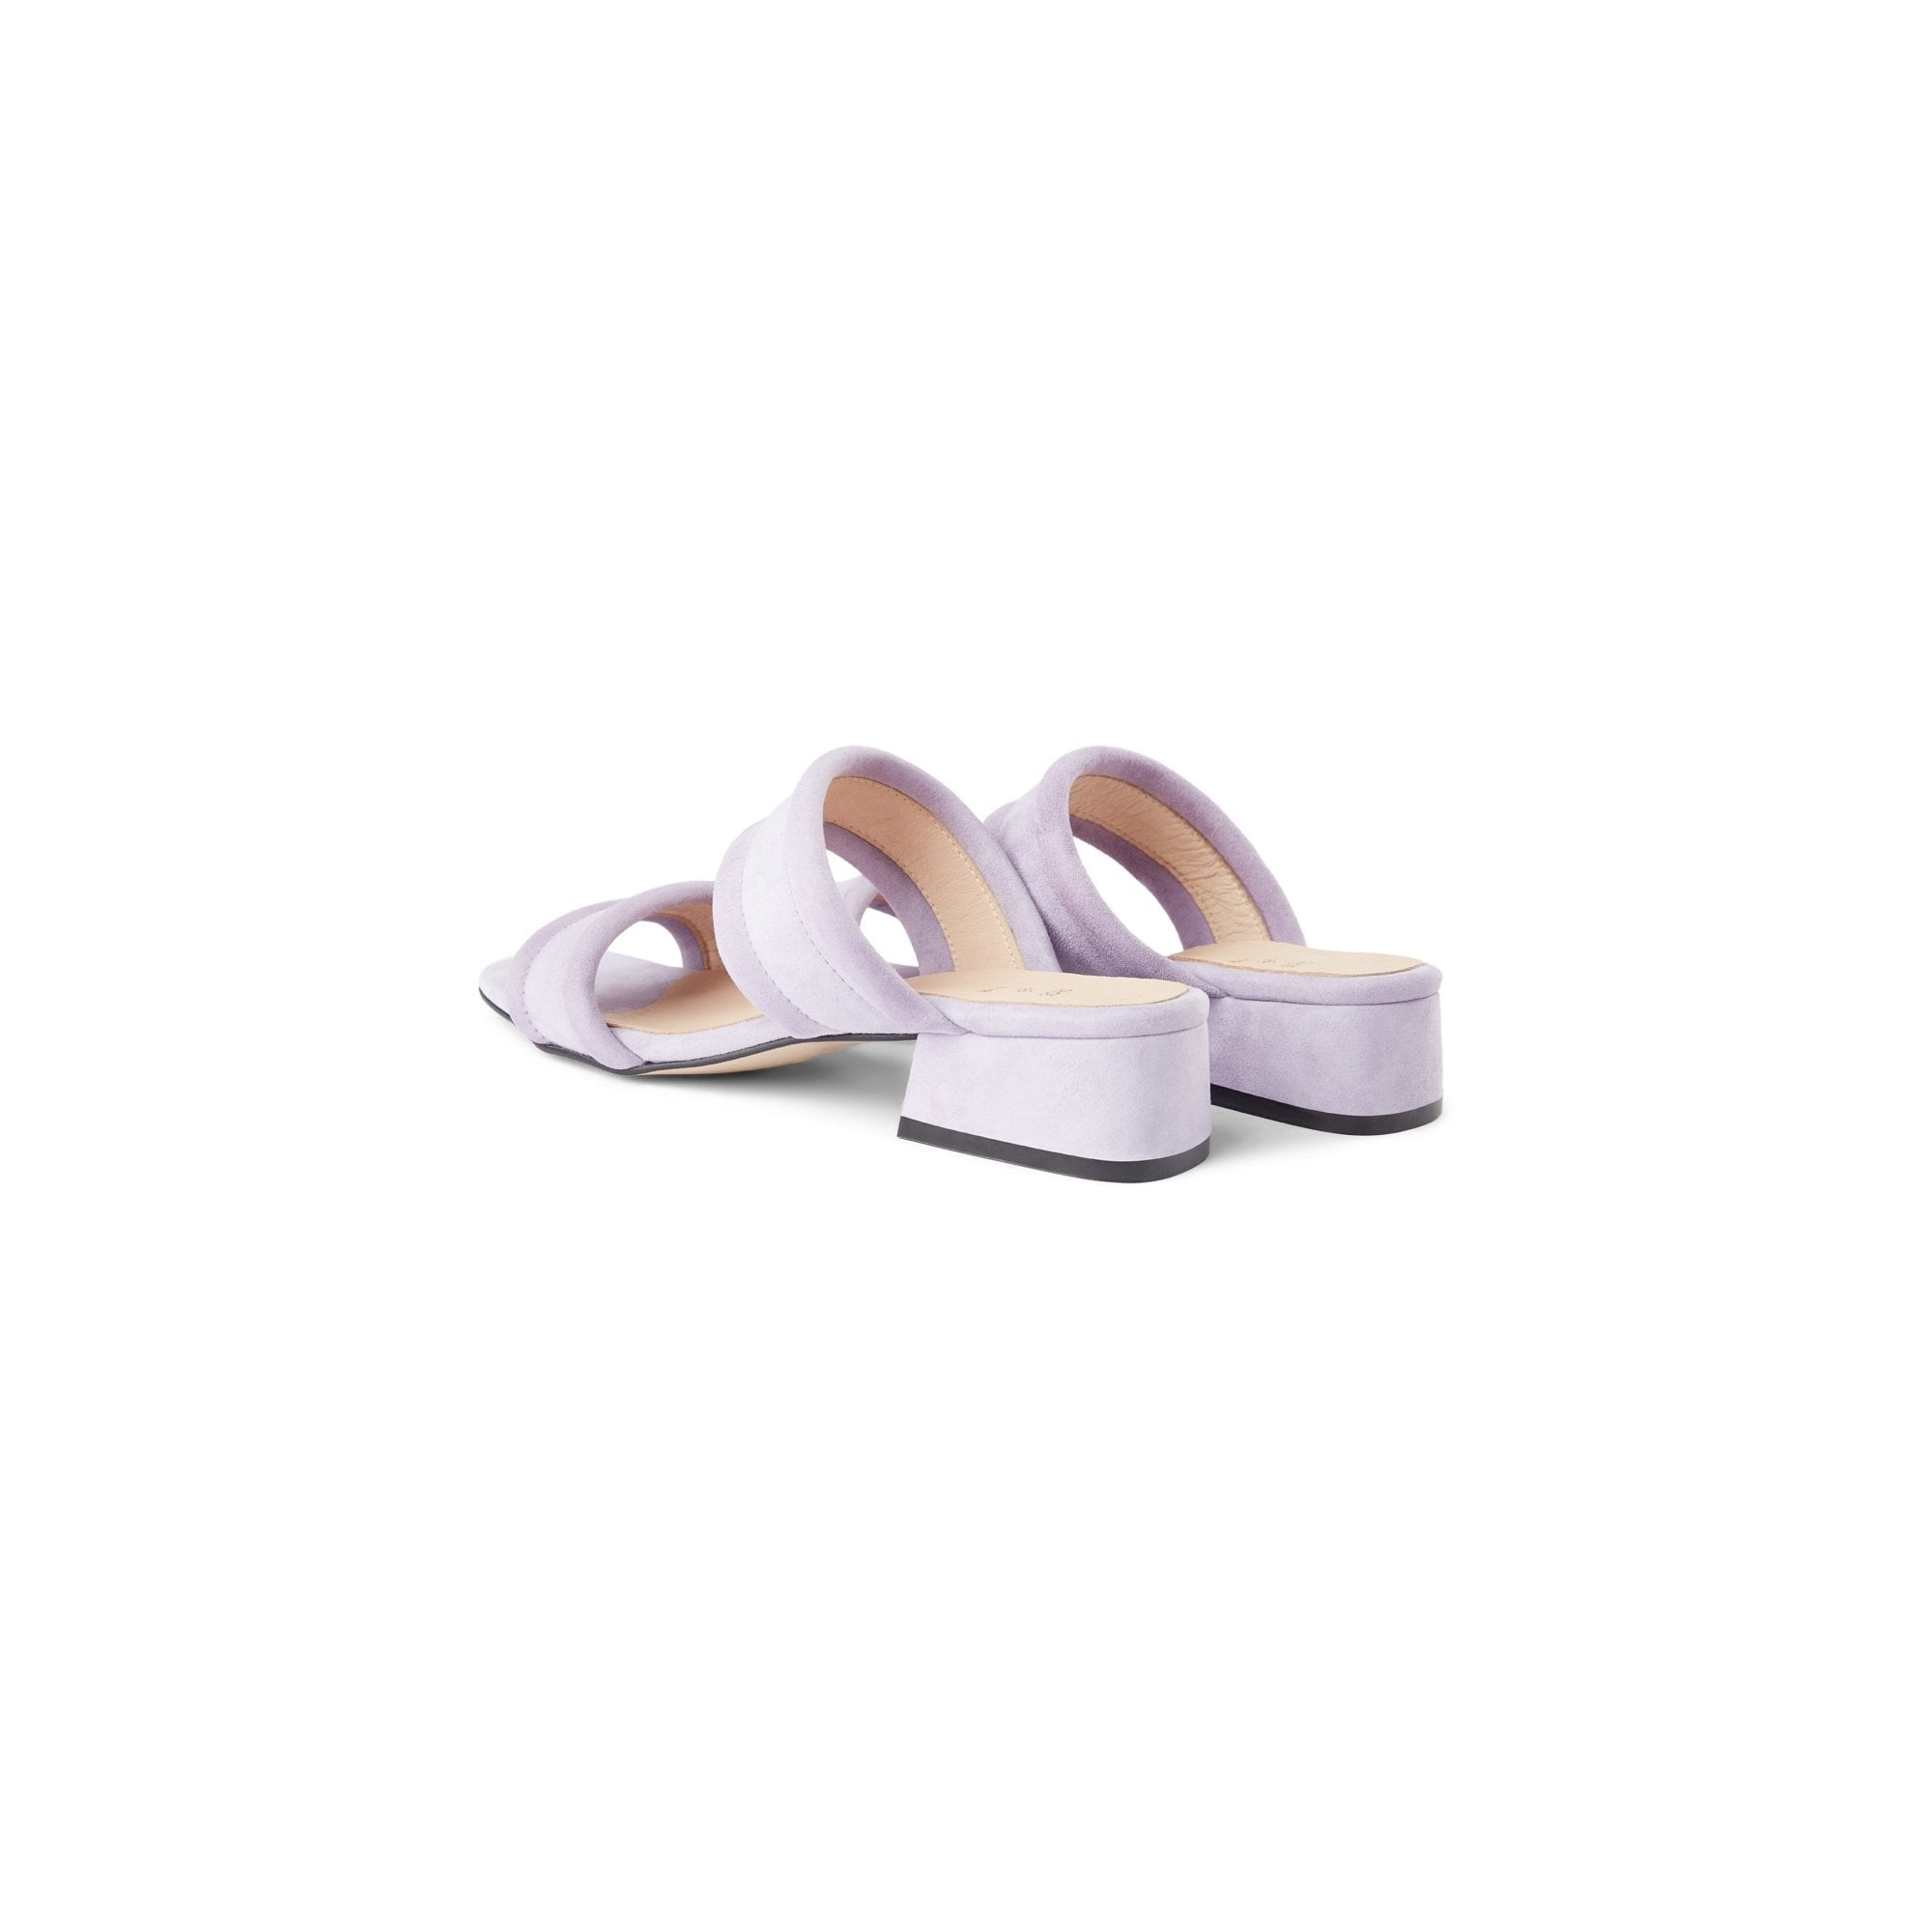 Sollo lilac Suede and leather sandals